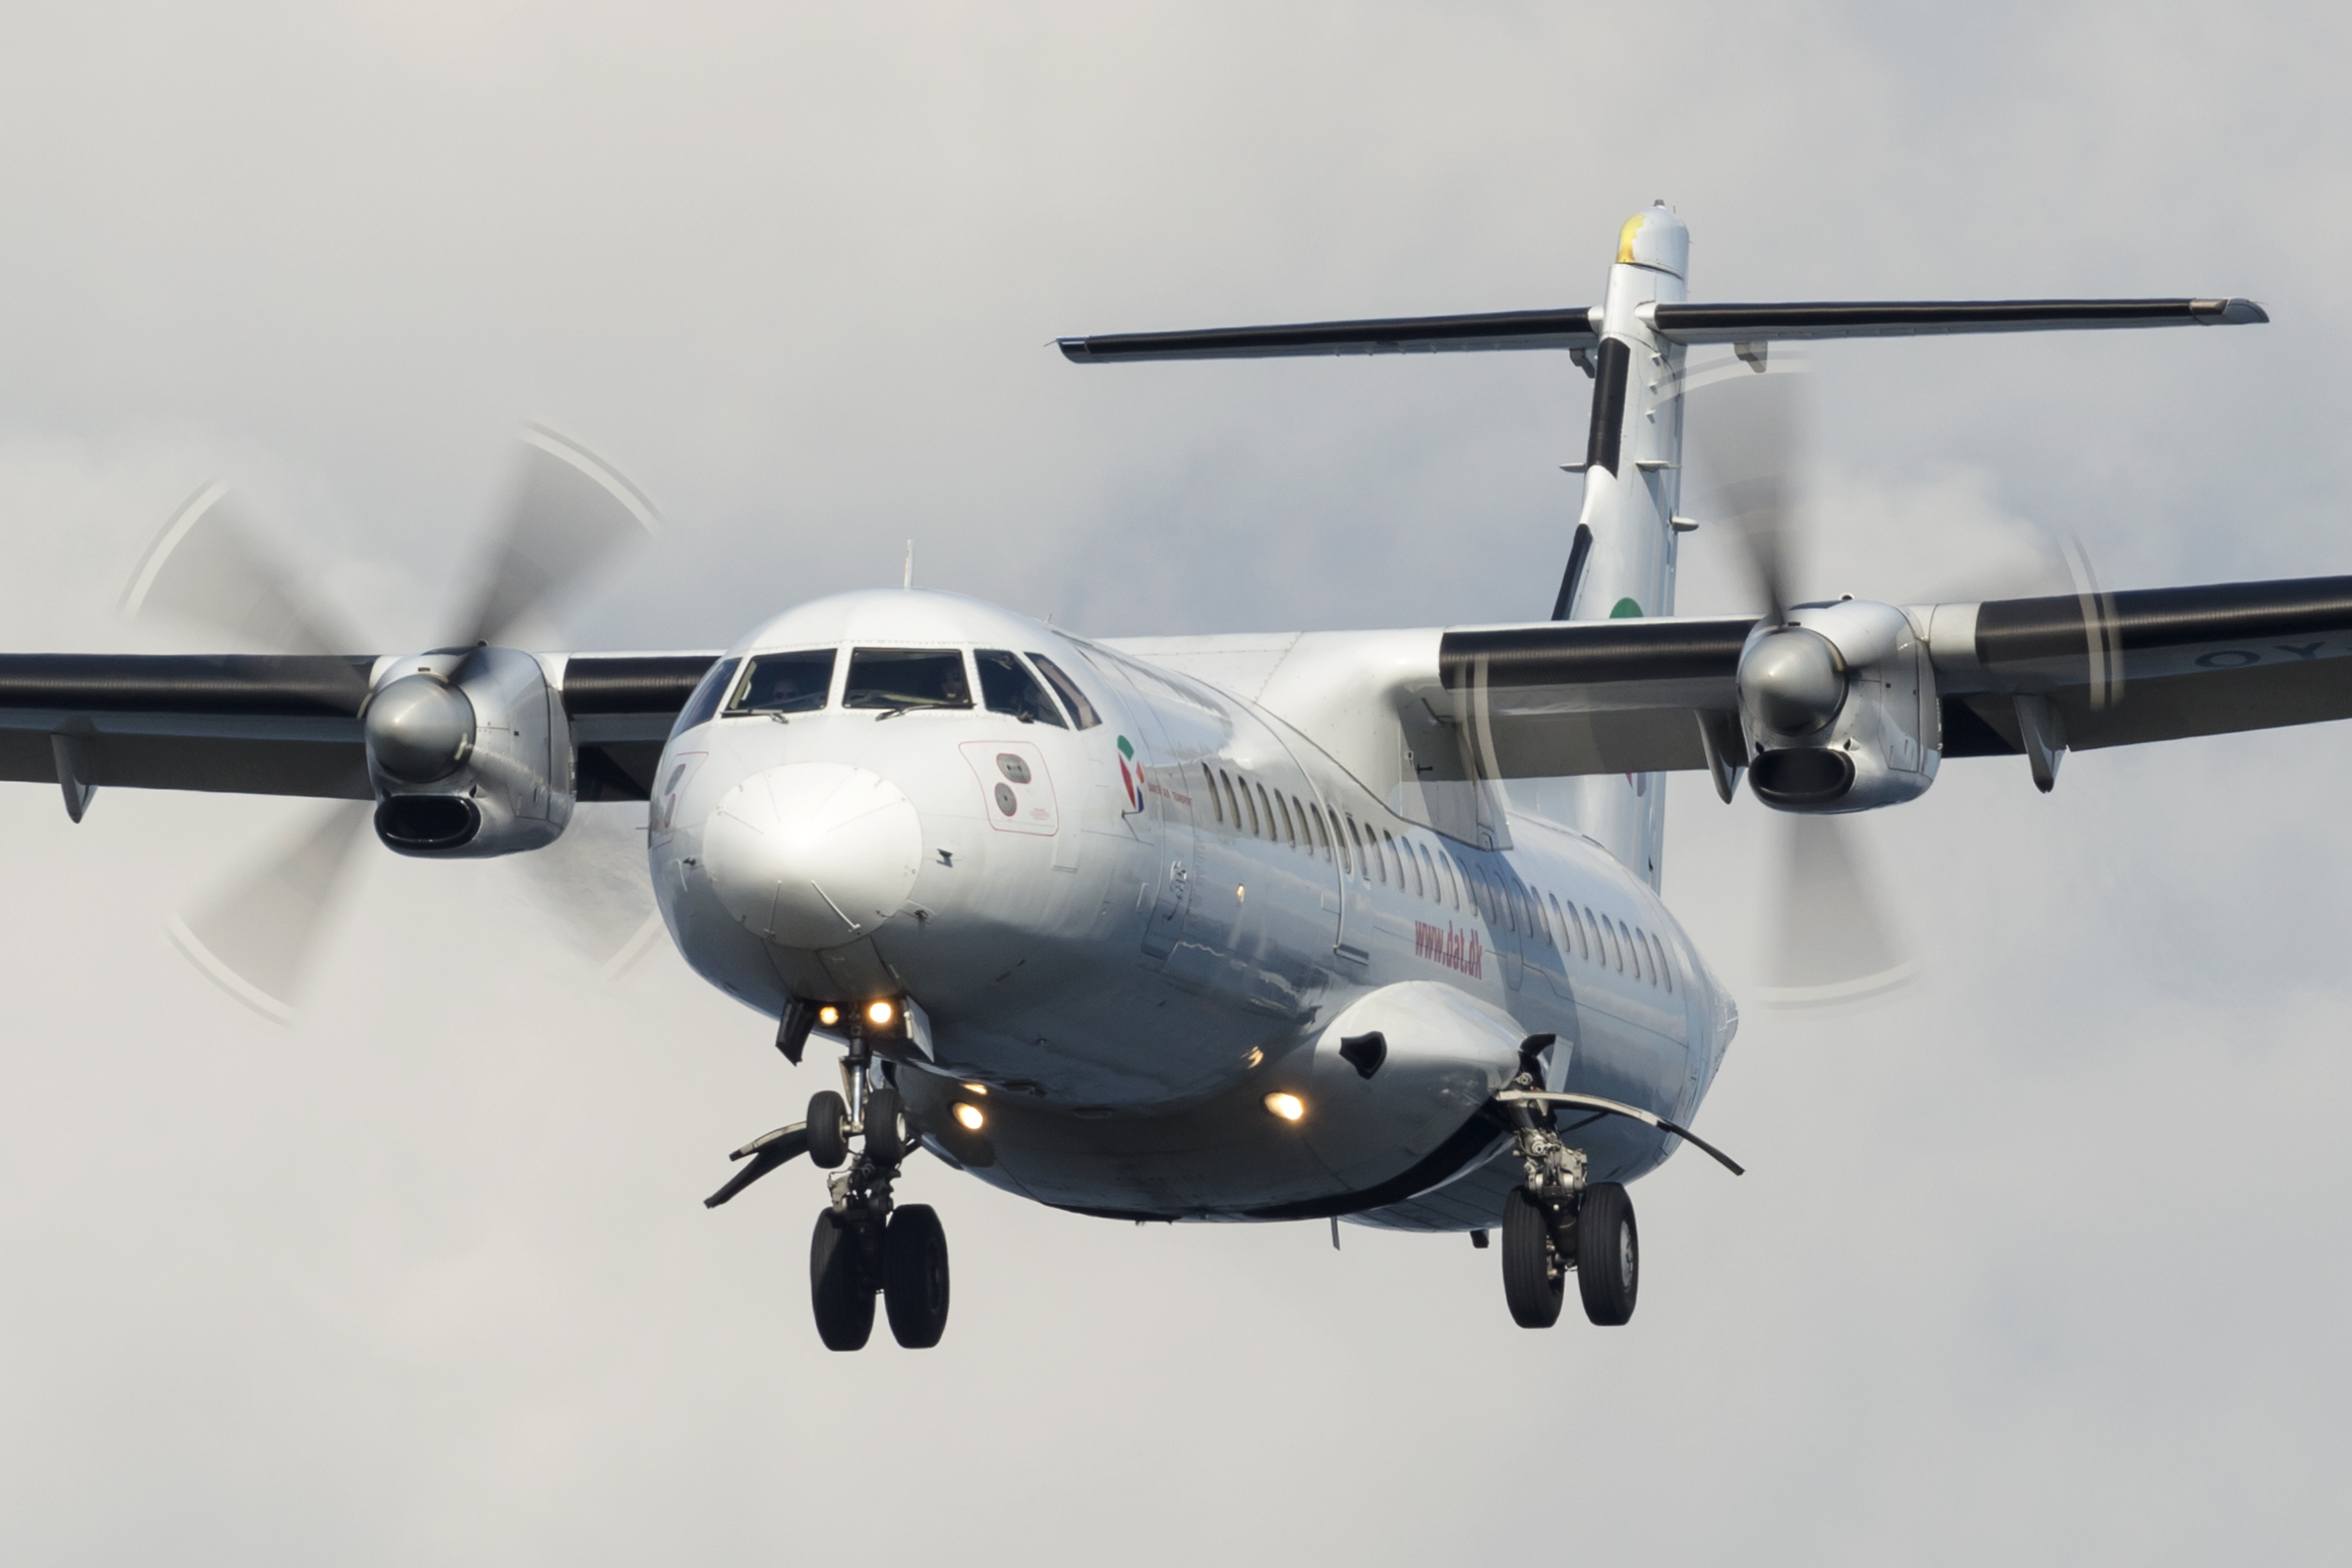 ATR 72 fra DAT. (Foto: © Thorbjørn Brunander Sund, Danish Aviation Photo)